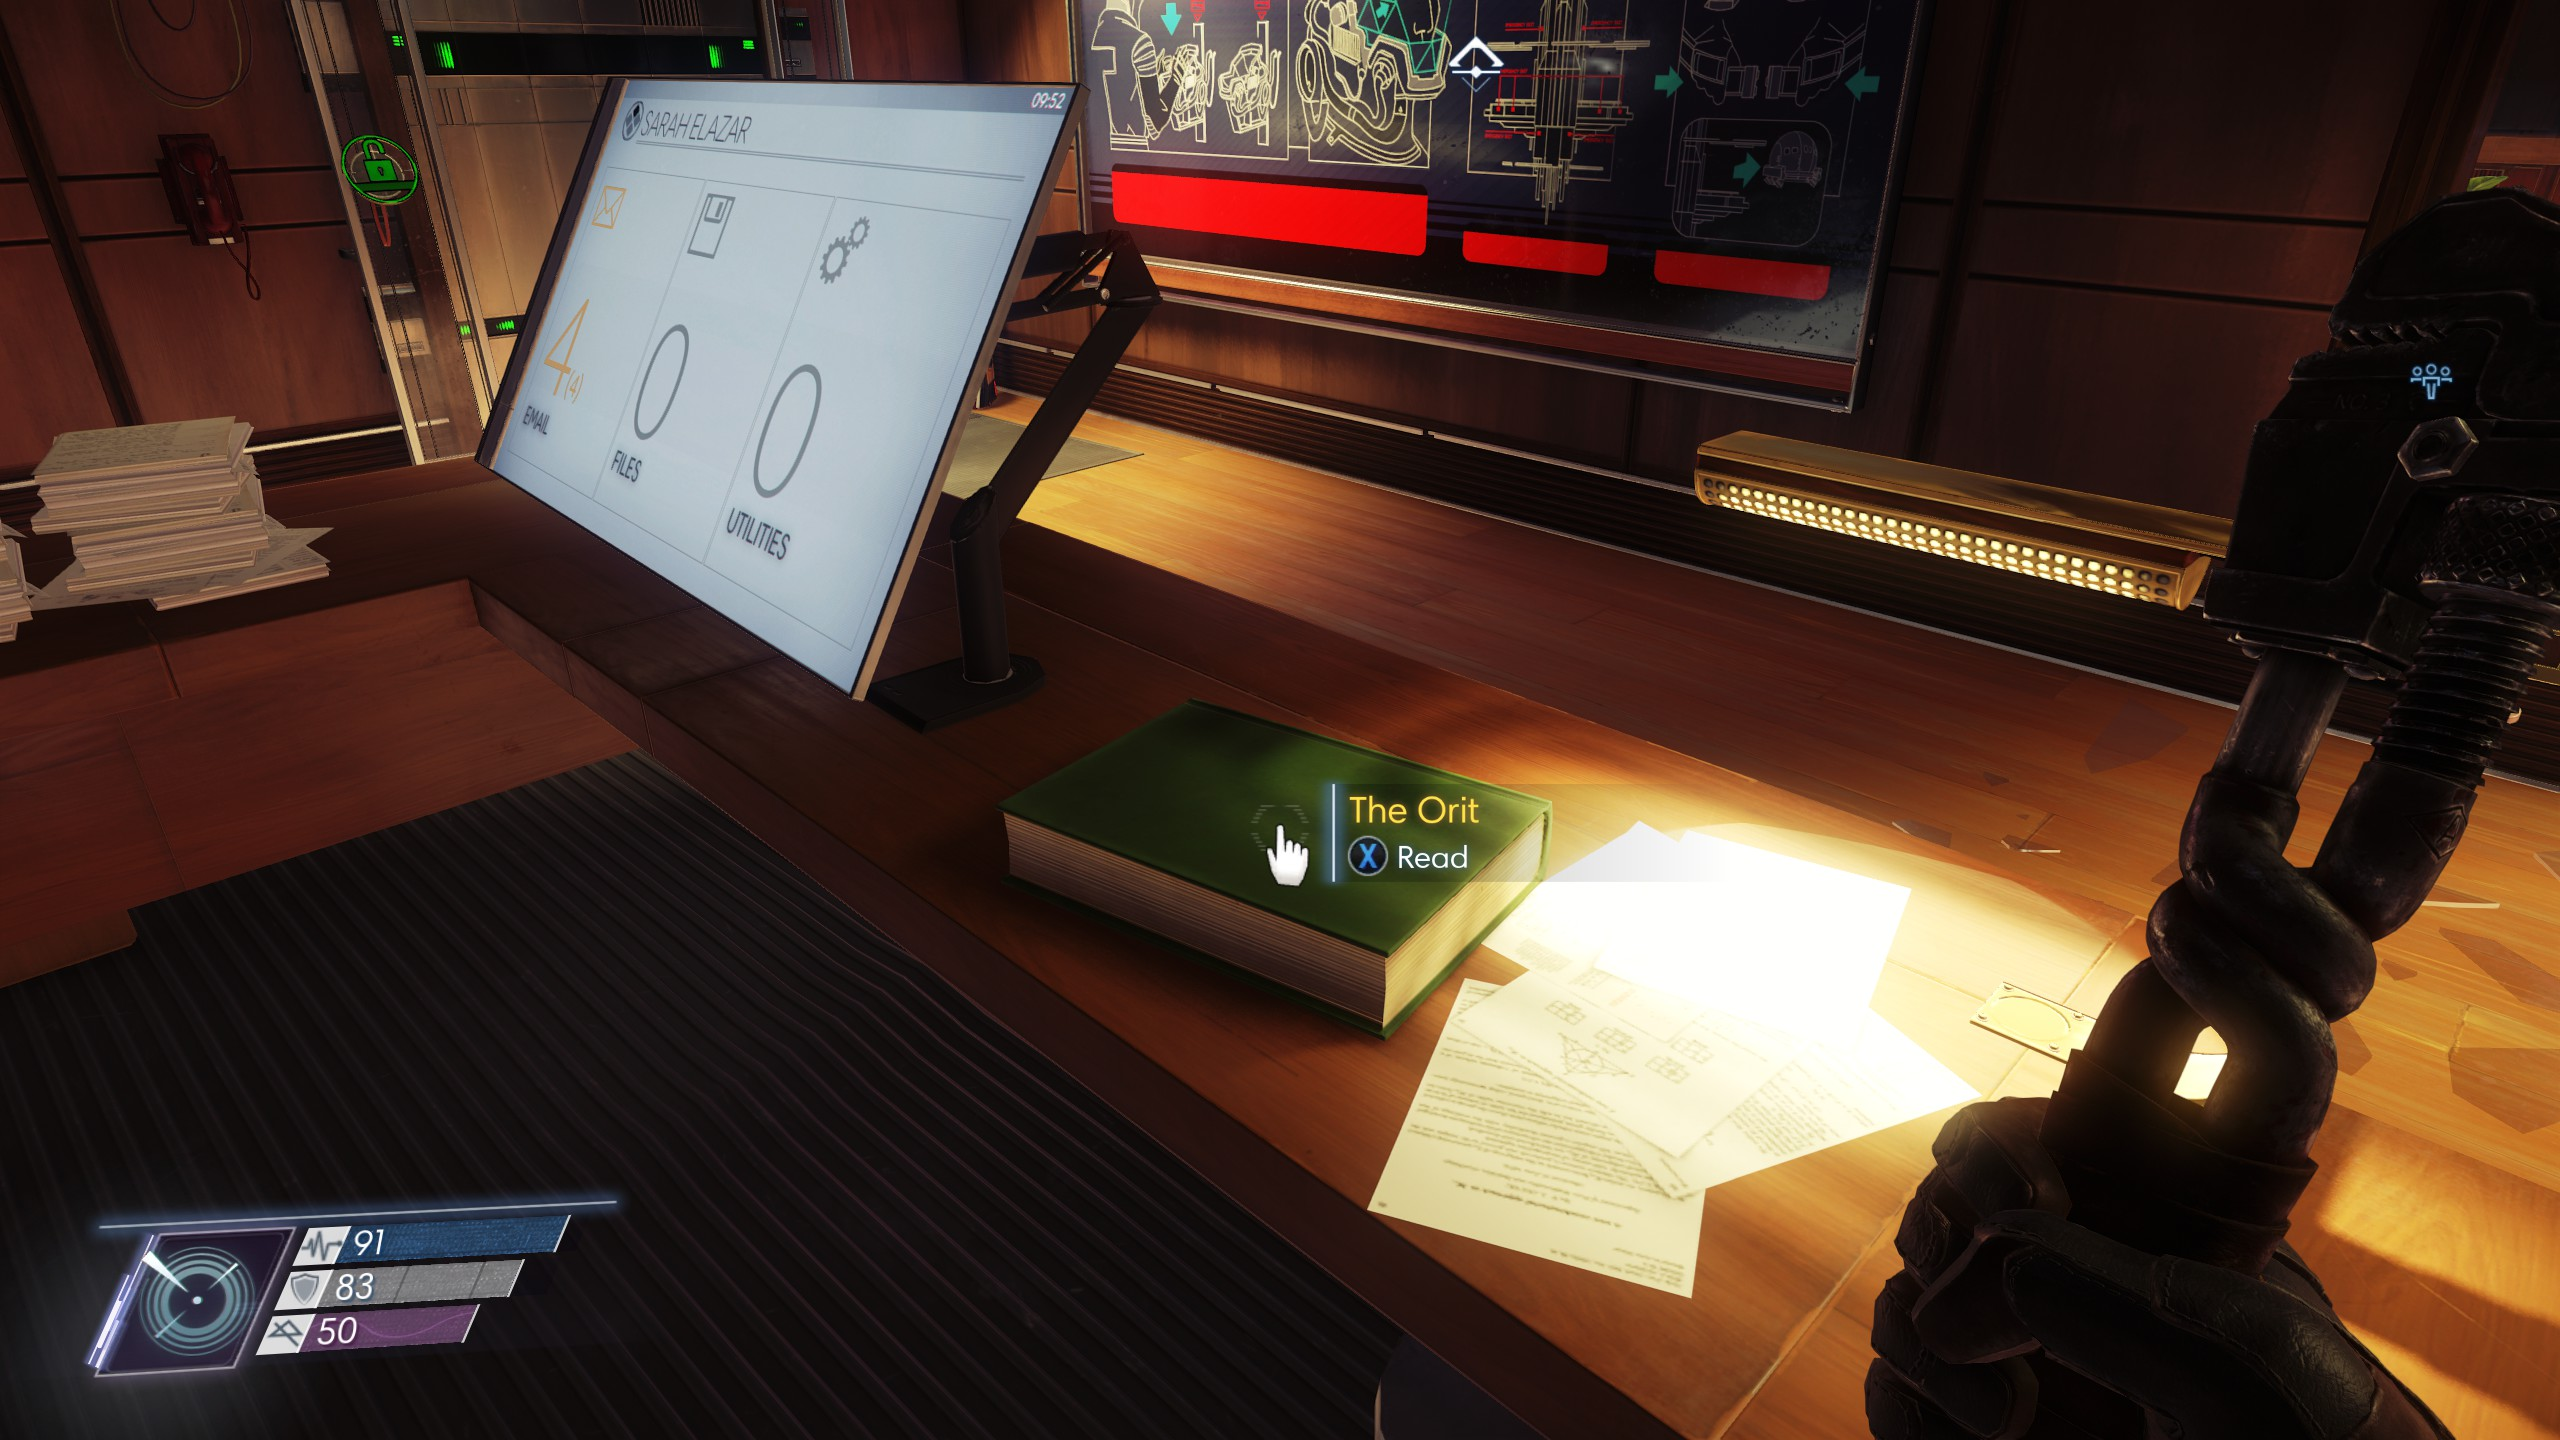 You'll find The Orit on the same desk where you located the Shotgun.